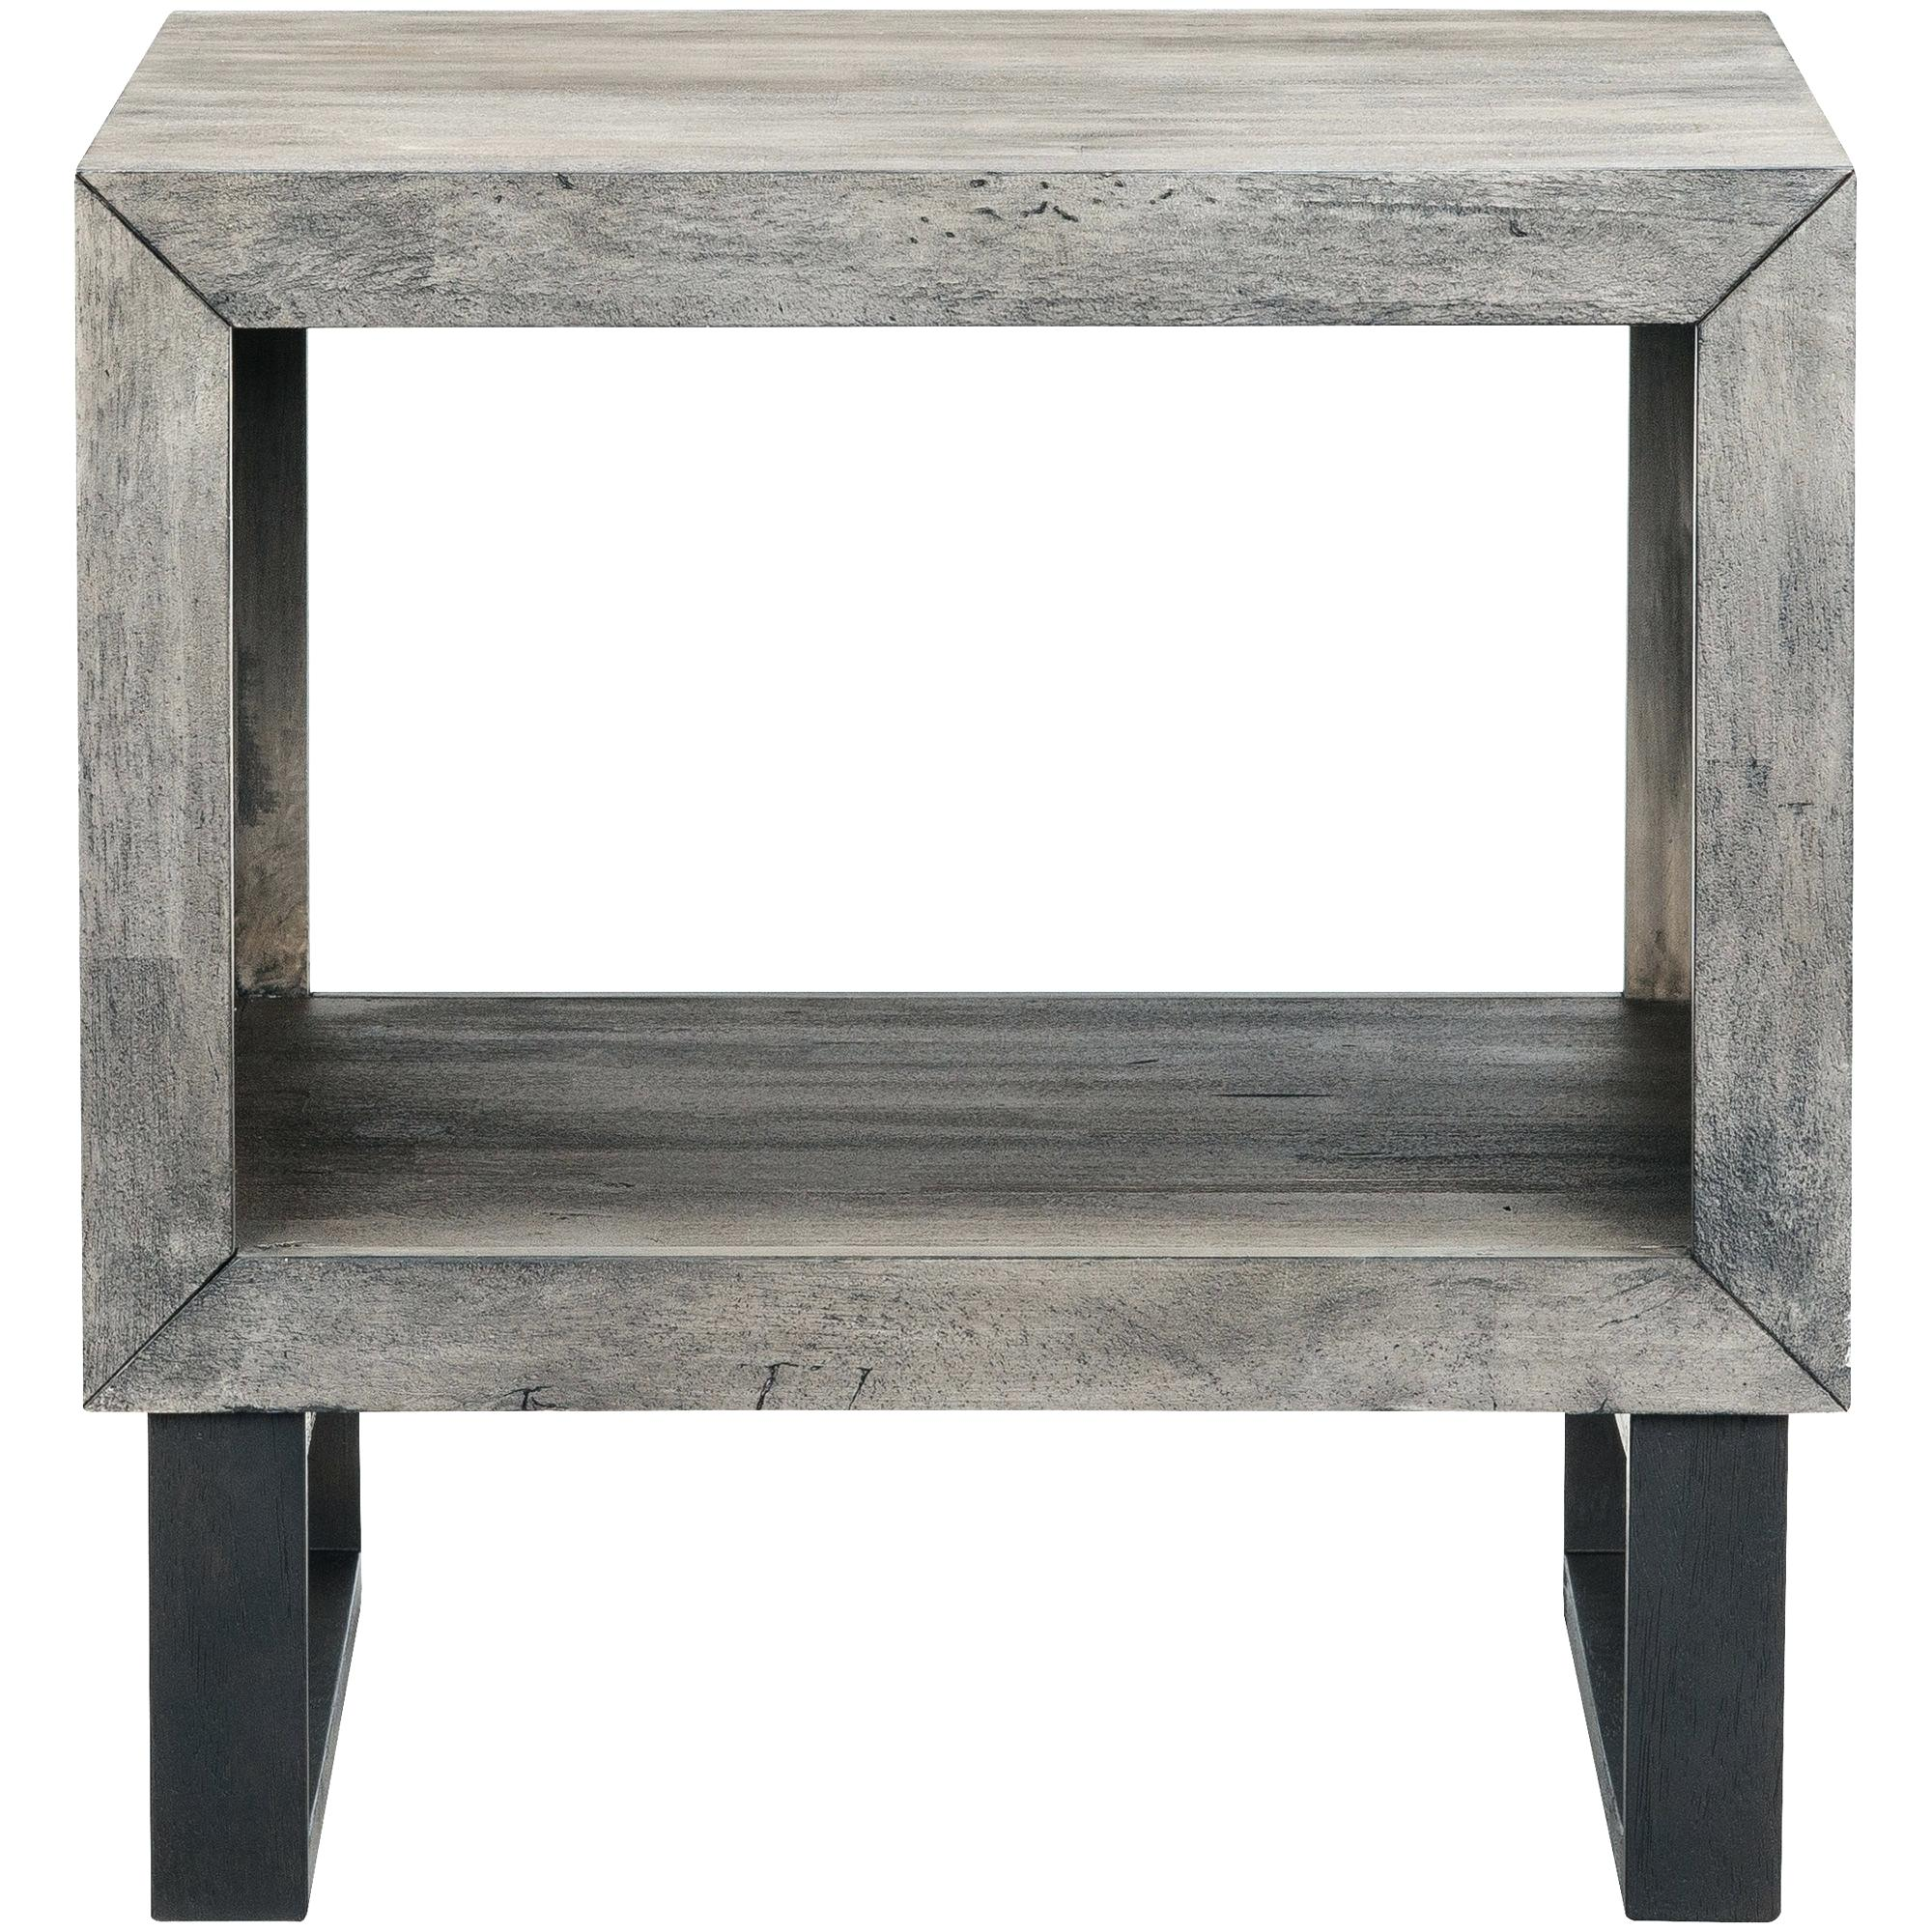 grey accent table ash small drive sandblasted gray target wood top metal legs coffee dining room wall decor ideas oval side console with cabinets dark oak ikea glass stacking